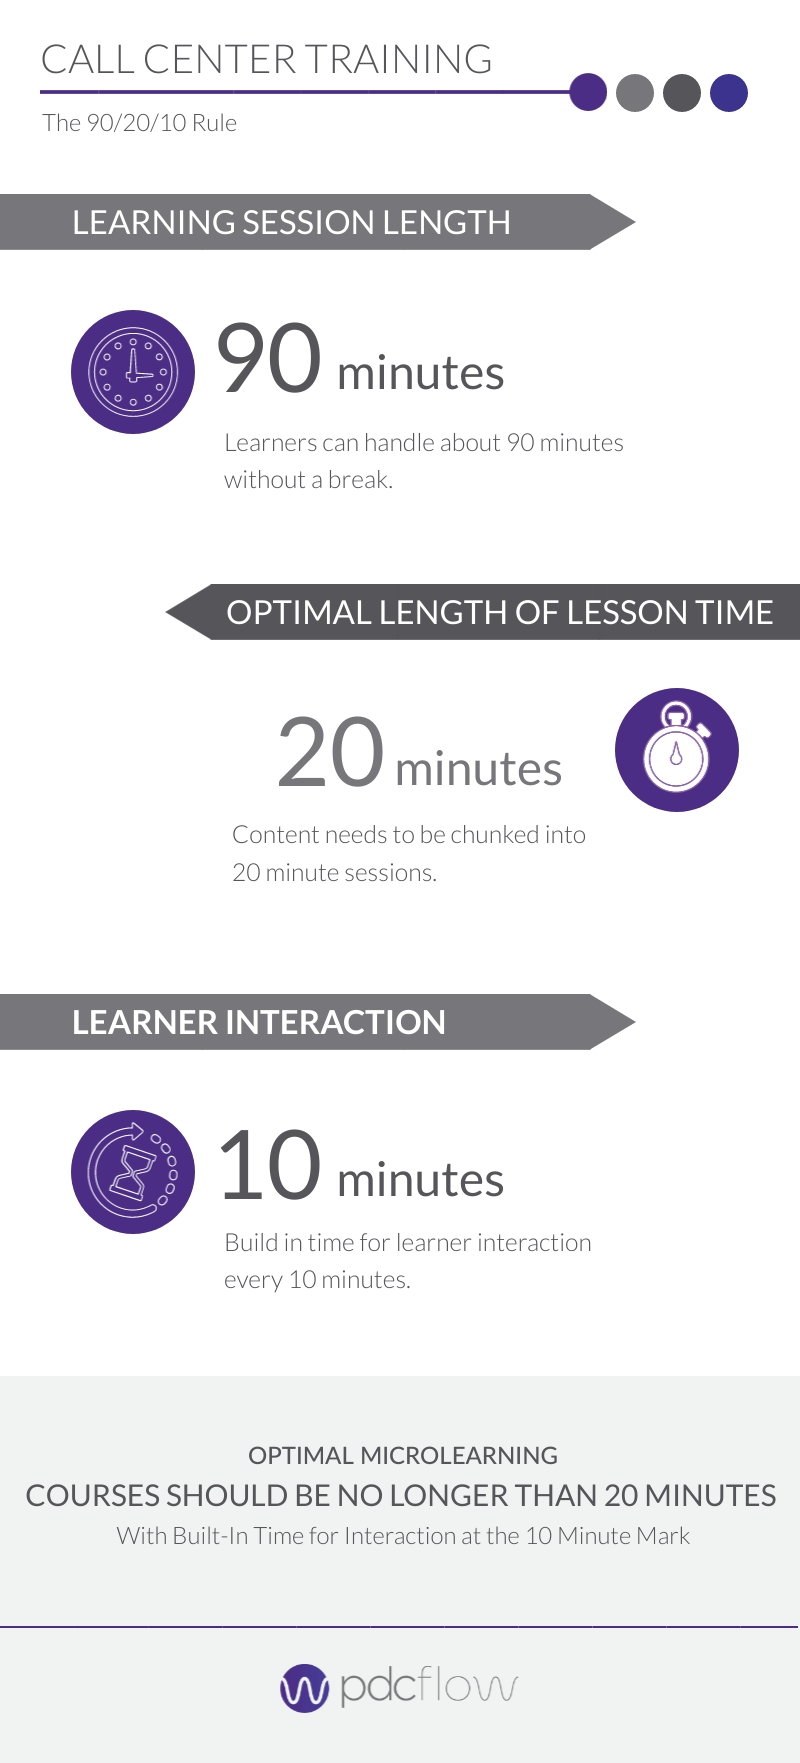 Call Center Training MicroLearning Infographic